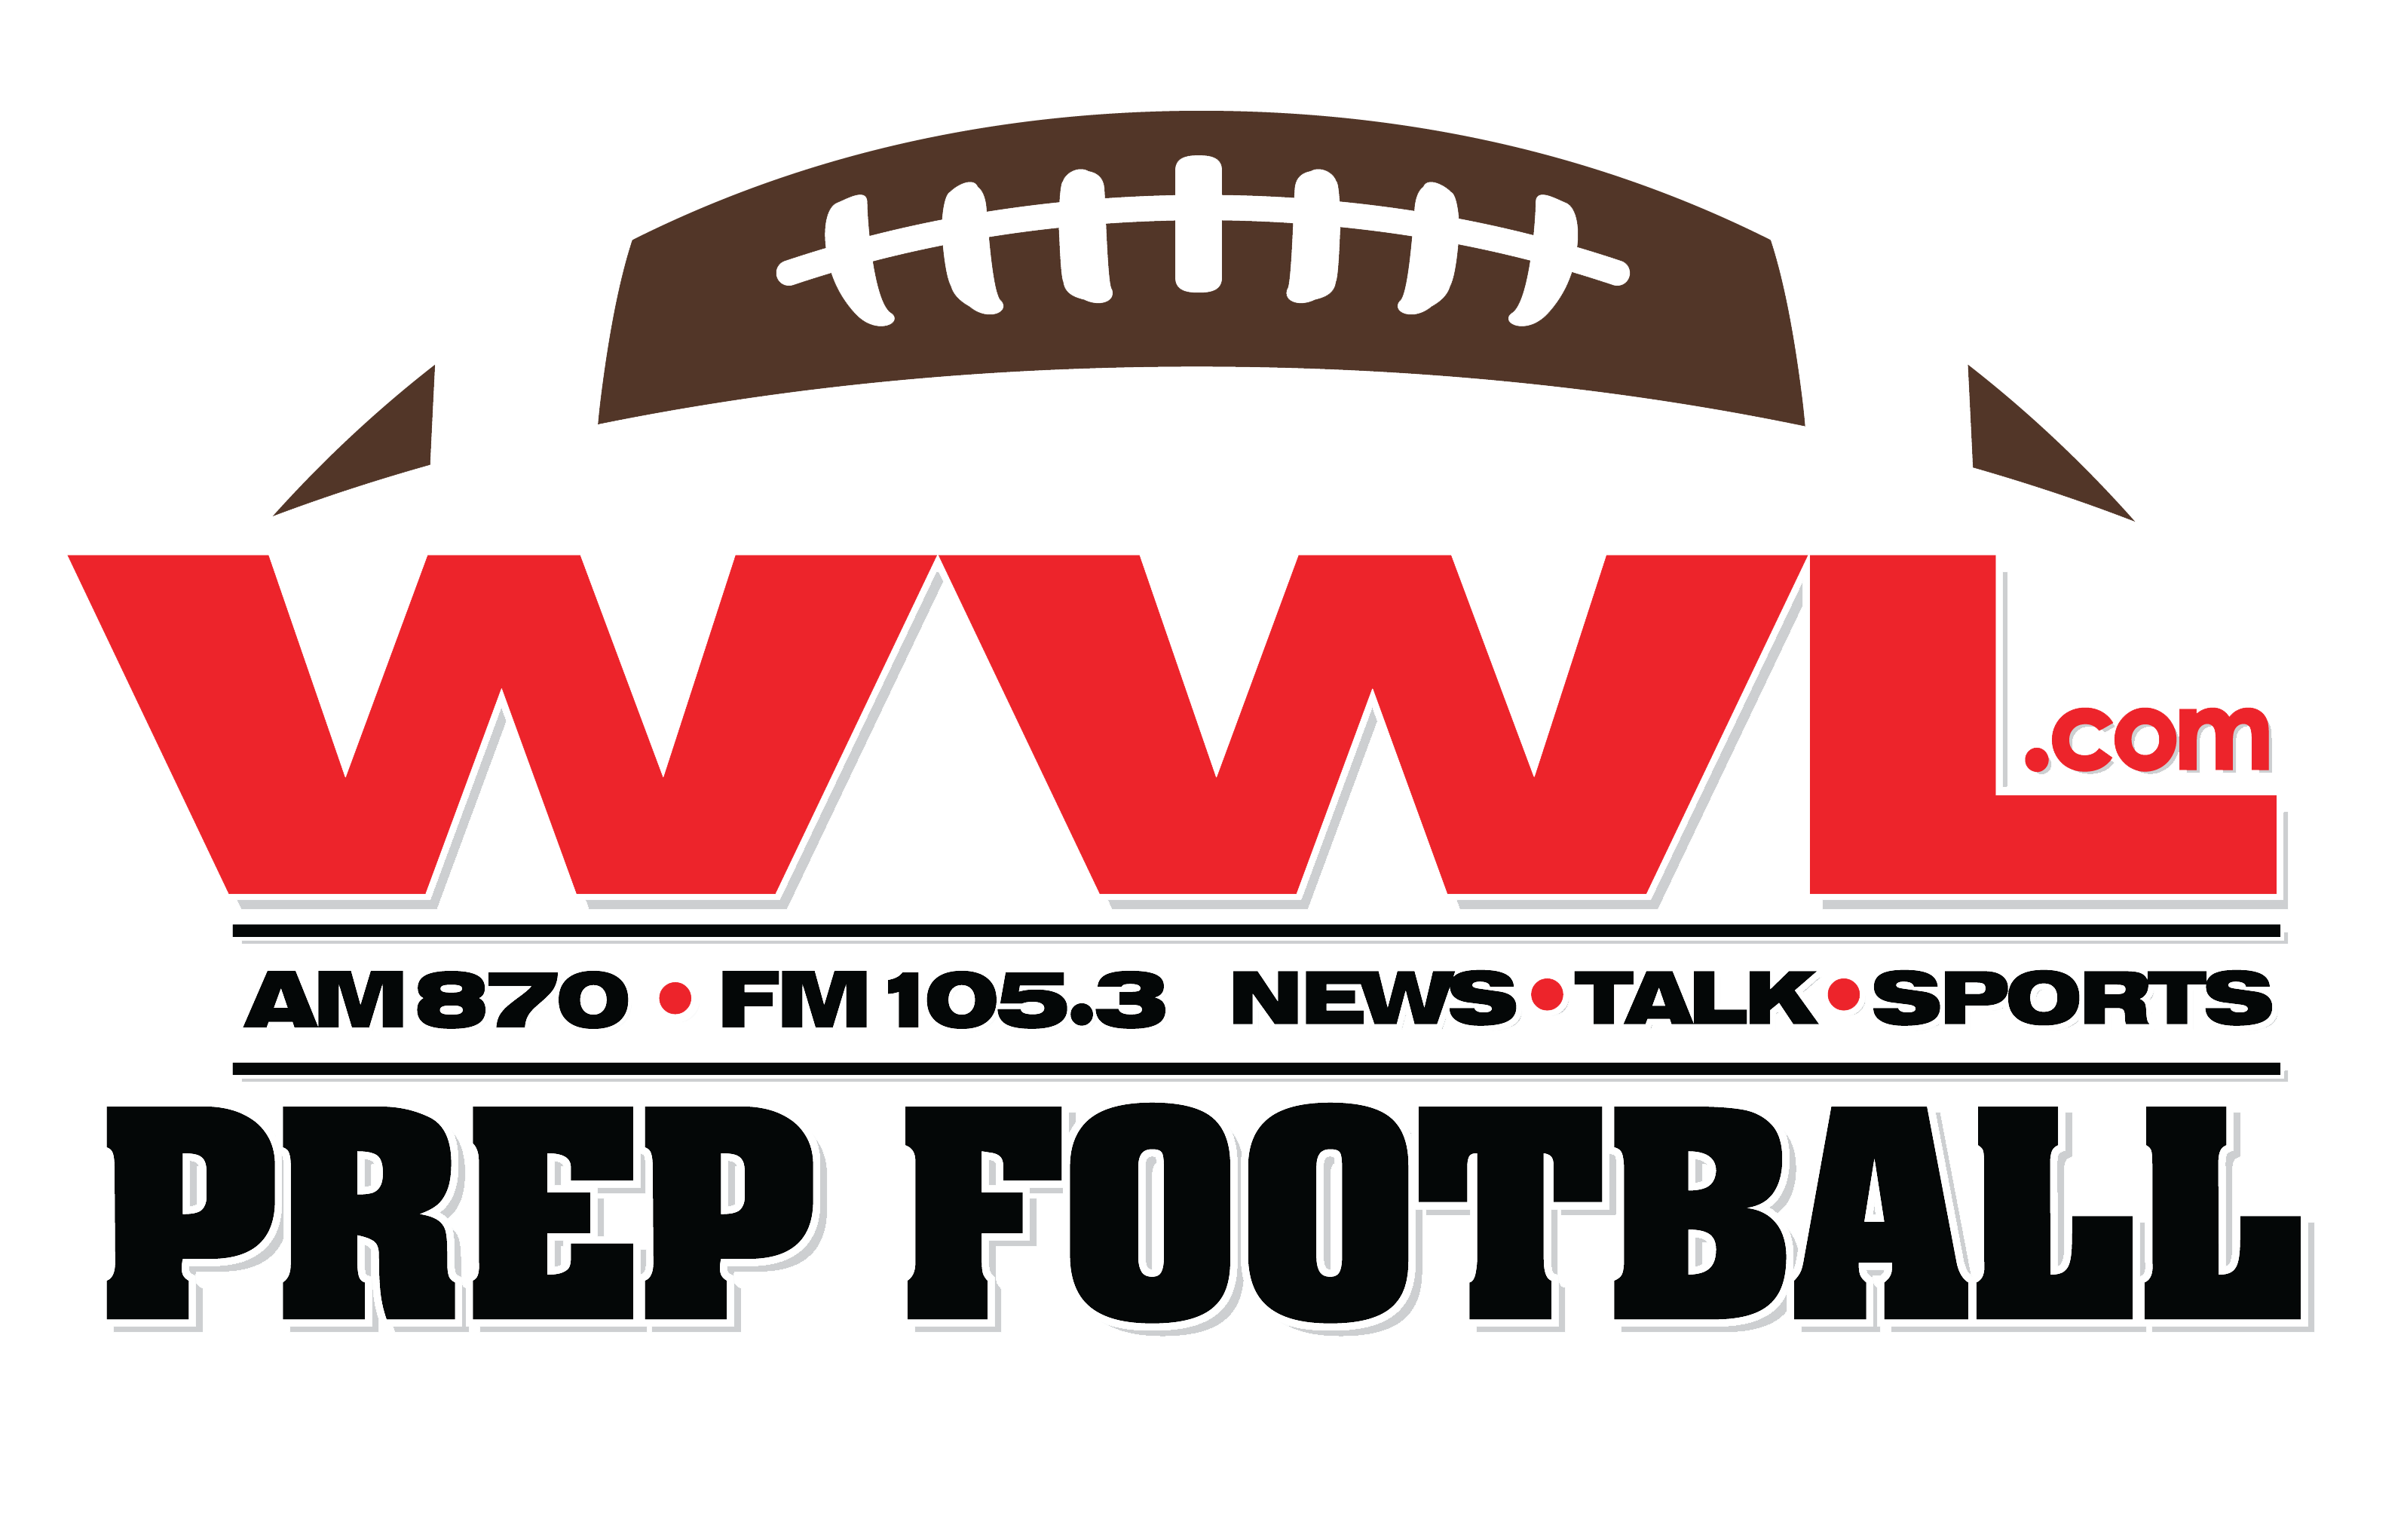 Tony D previews this week's Online Game of the Week on WWL.com between Jesuit and Brother Martin